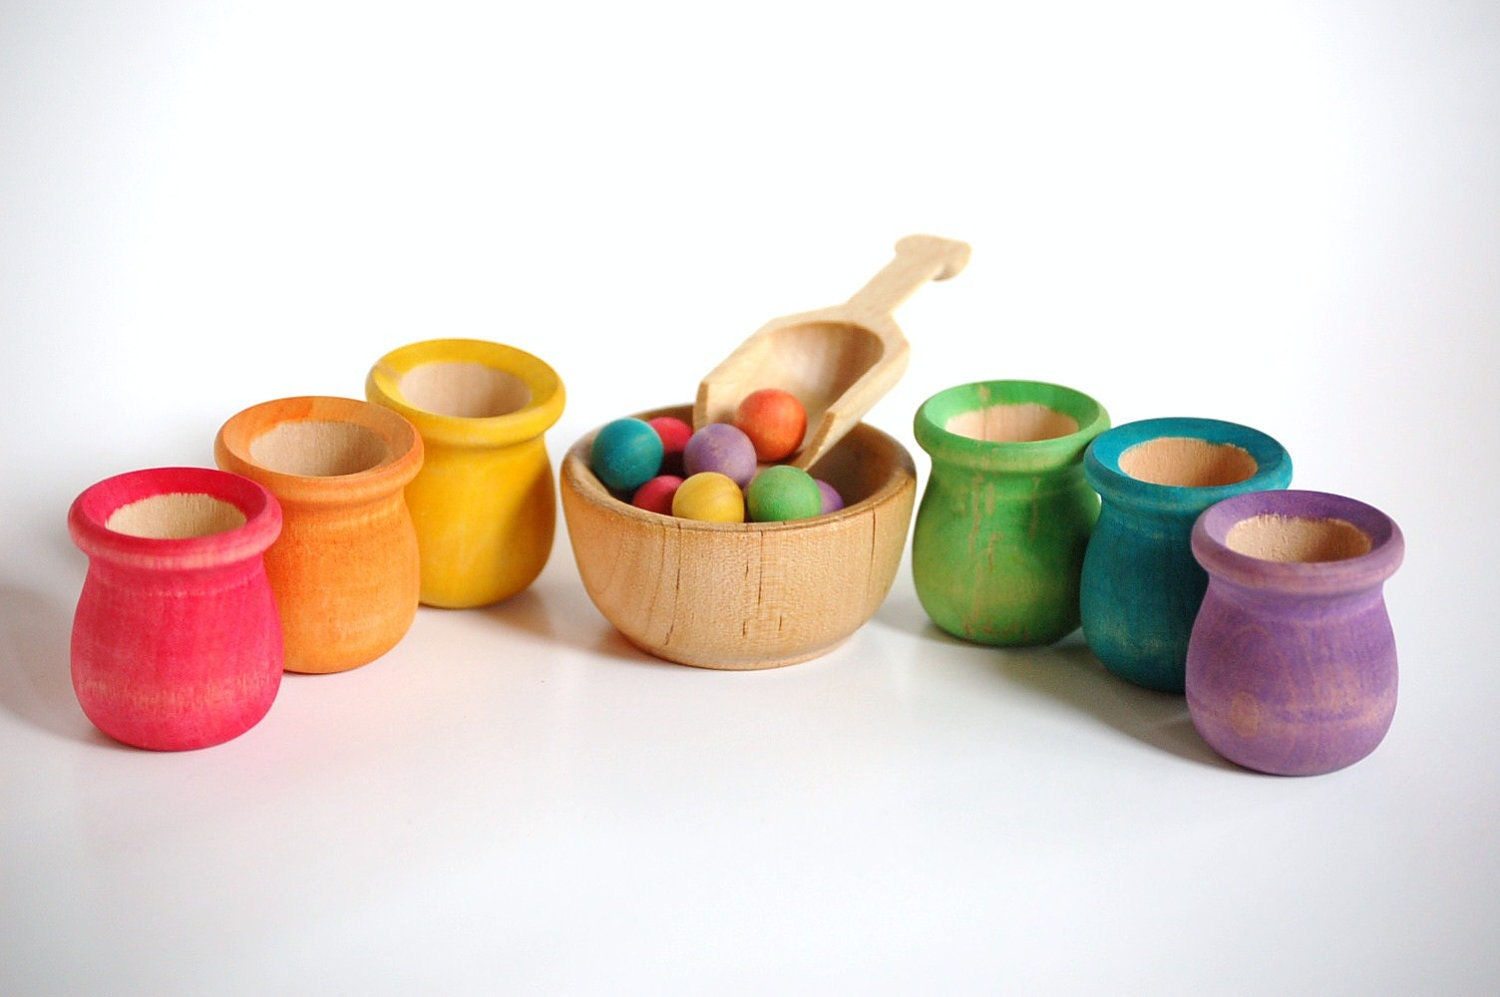 Waldorf and Montessori Natural Wood Toy SCOOP & SORT by applenamos